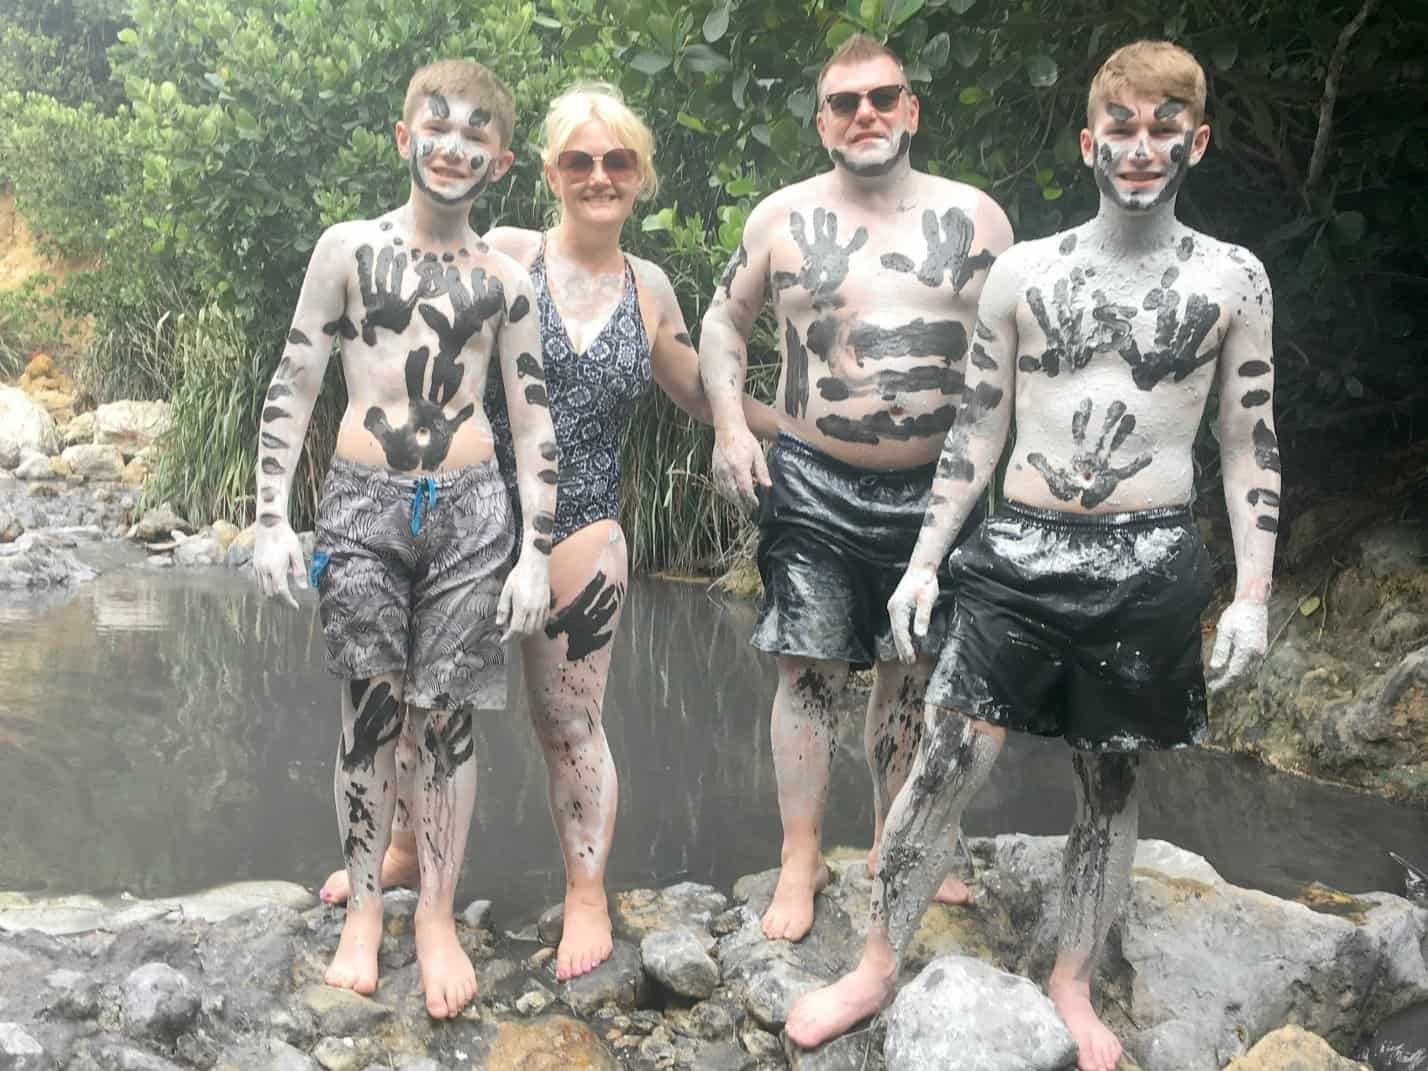 Mud Bath in the Volcano at St Lucia www.extraordinarychaos.com